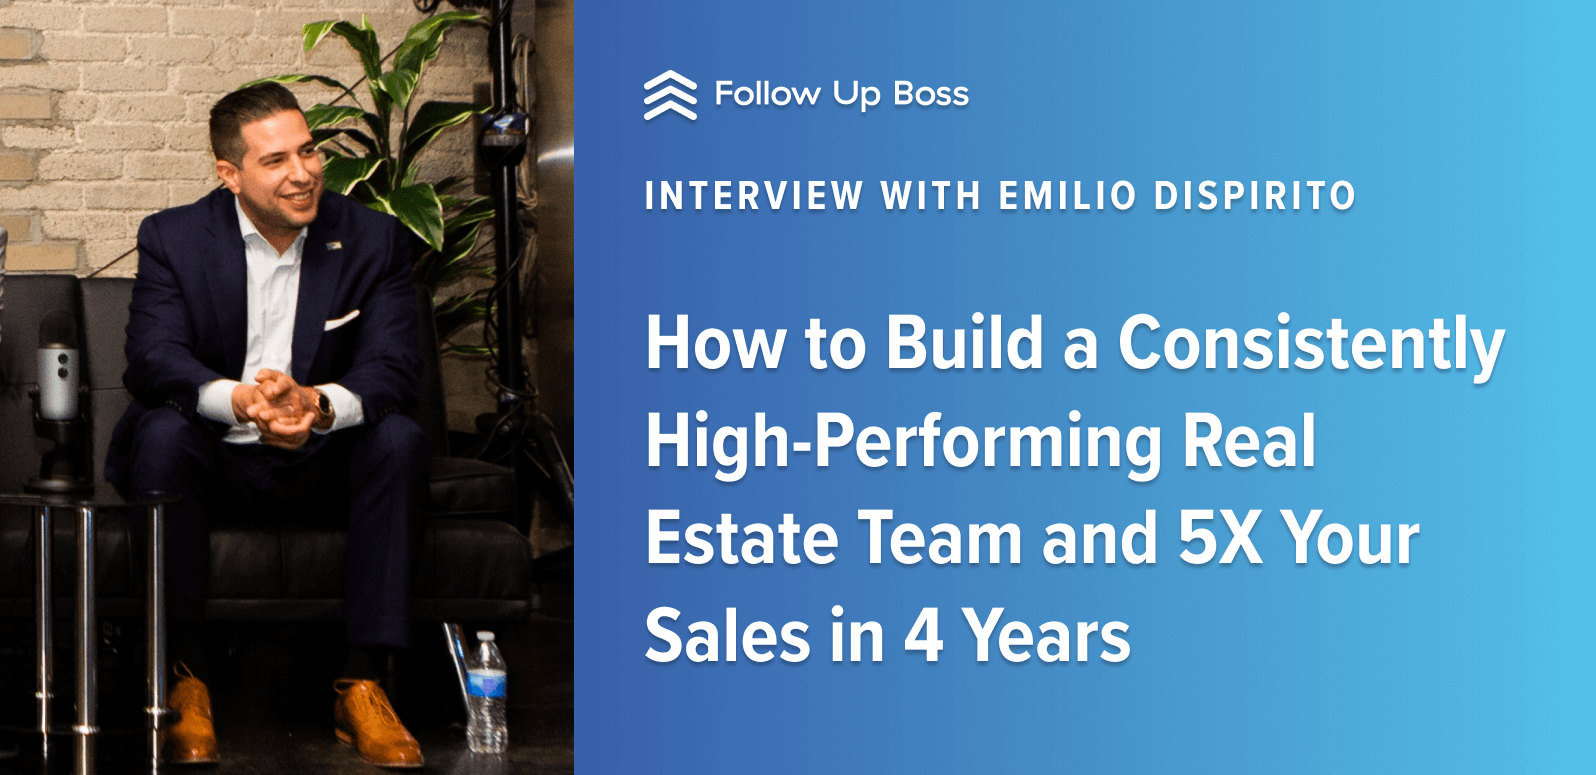 How to Build a Consistently High-Performing Real Estate Team and 5X Your Sales in 4 Years